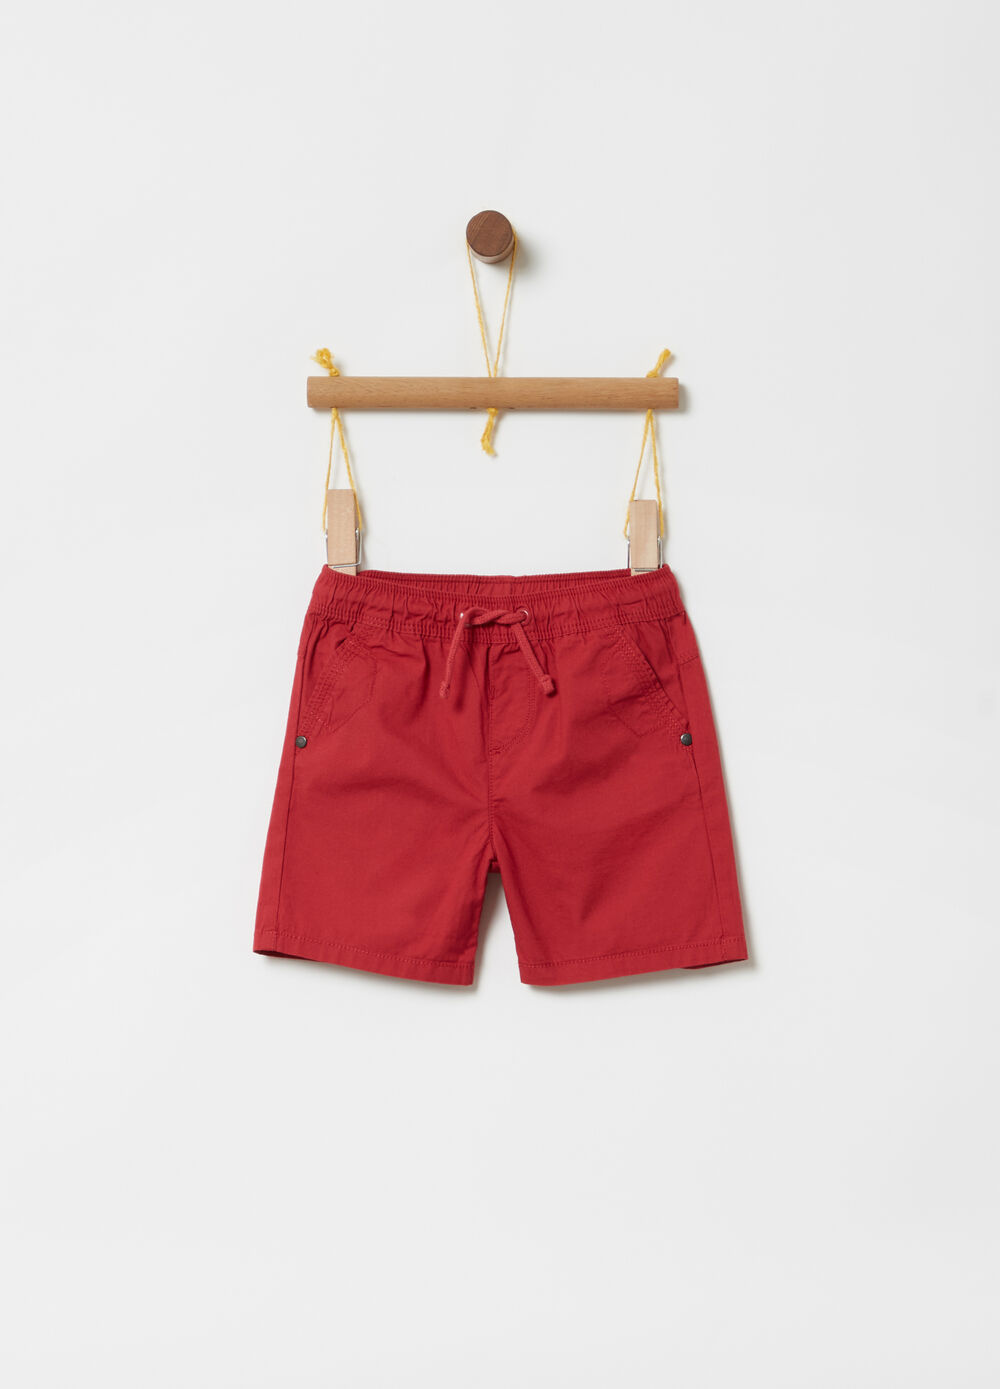 Poplin shorts with pockets and drawstring